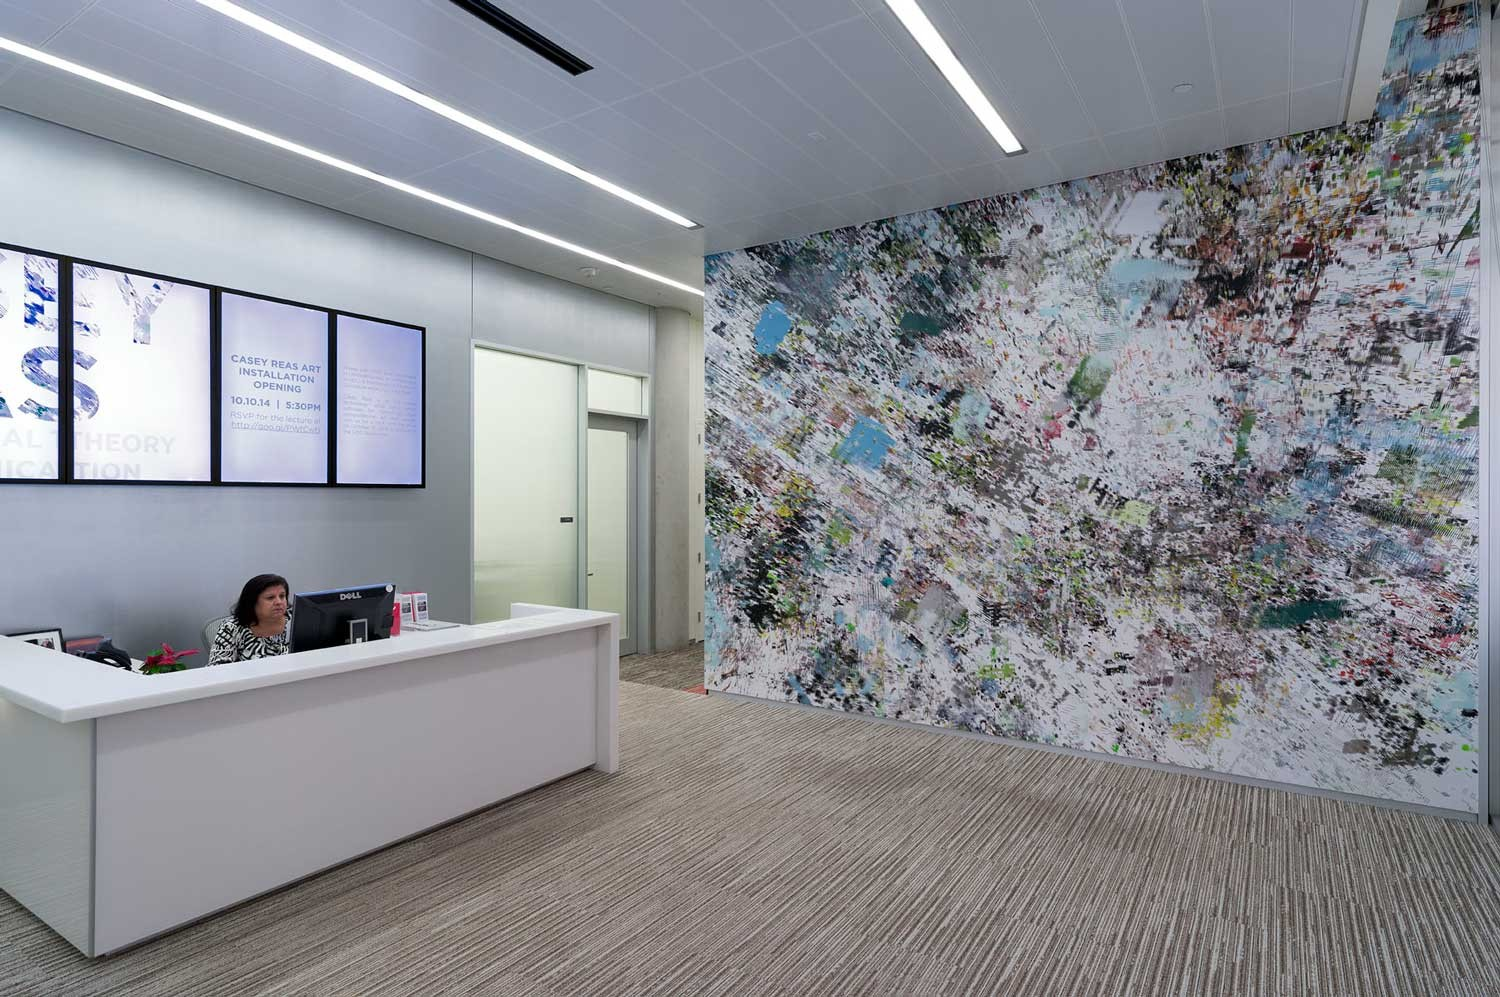 An office with a large wall mural